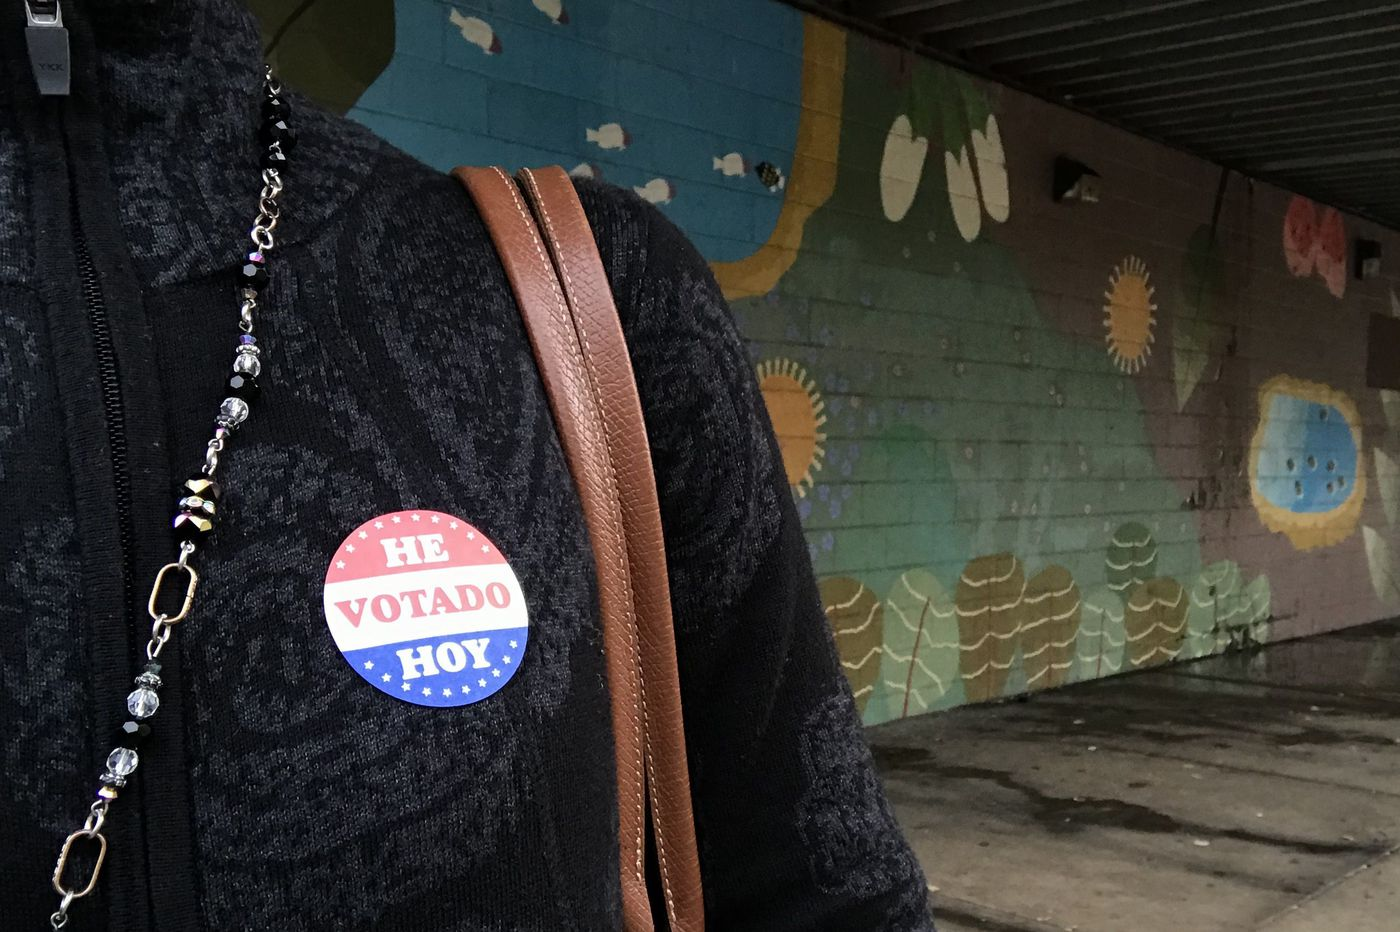 Philly coalition organizes to educate 'skeptical' Latino voters about November election